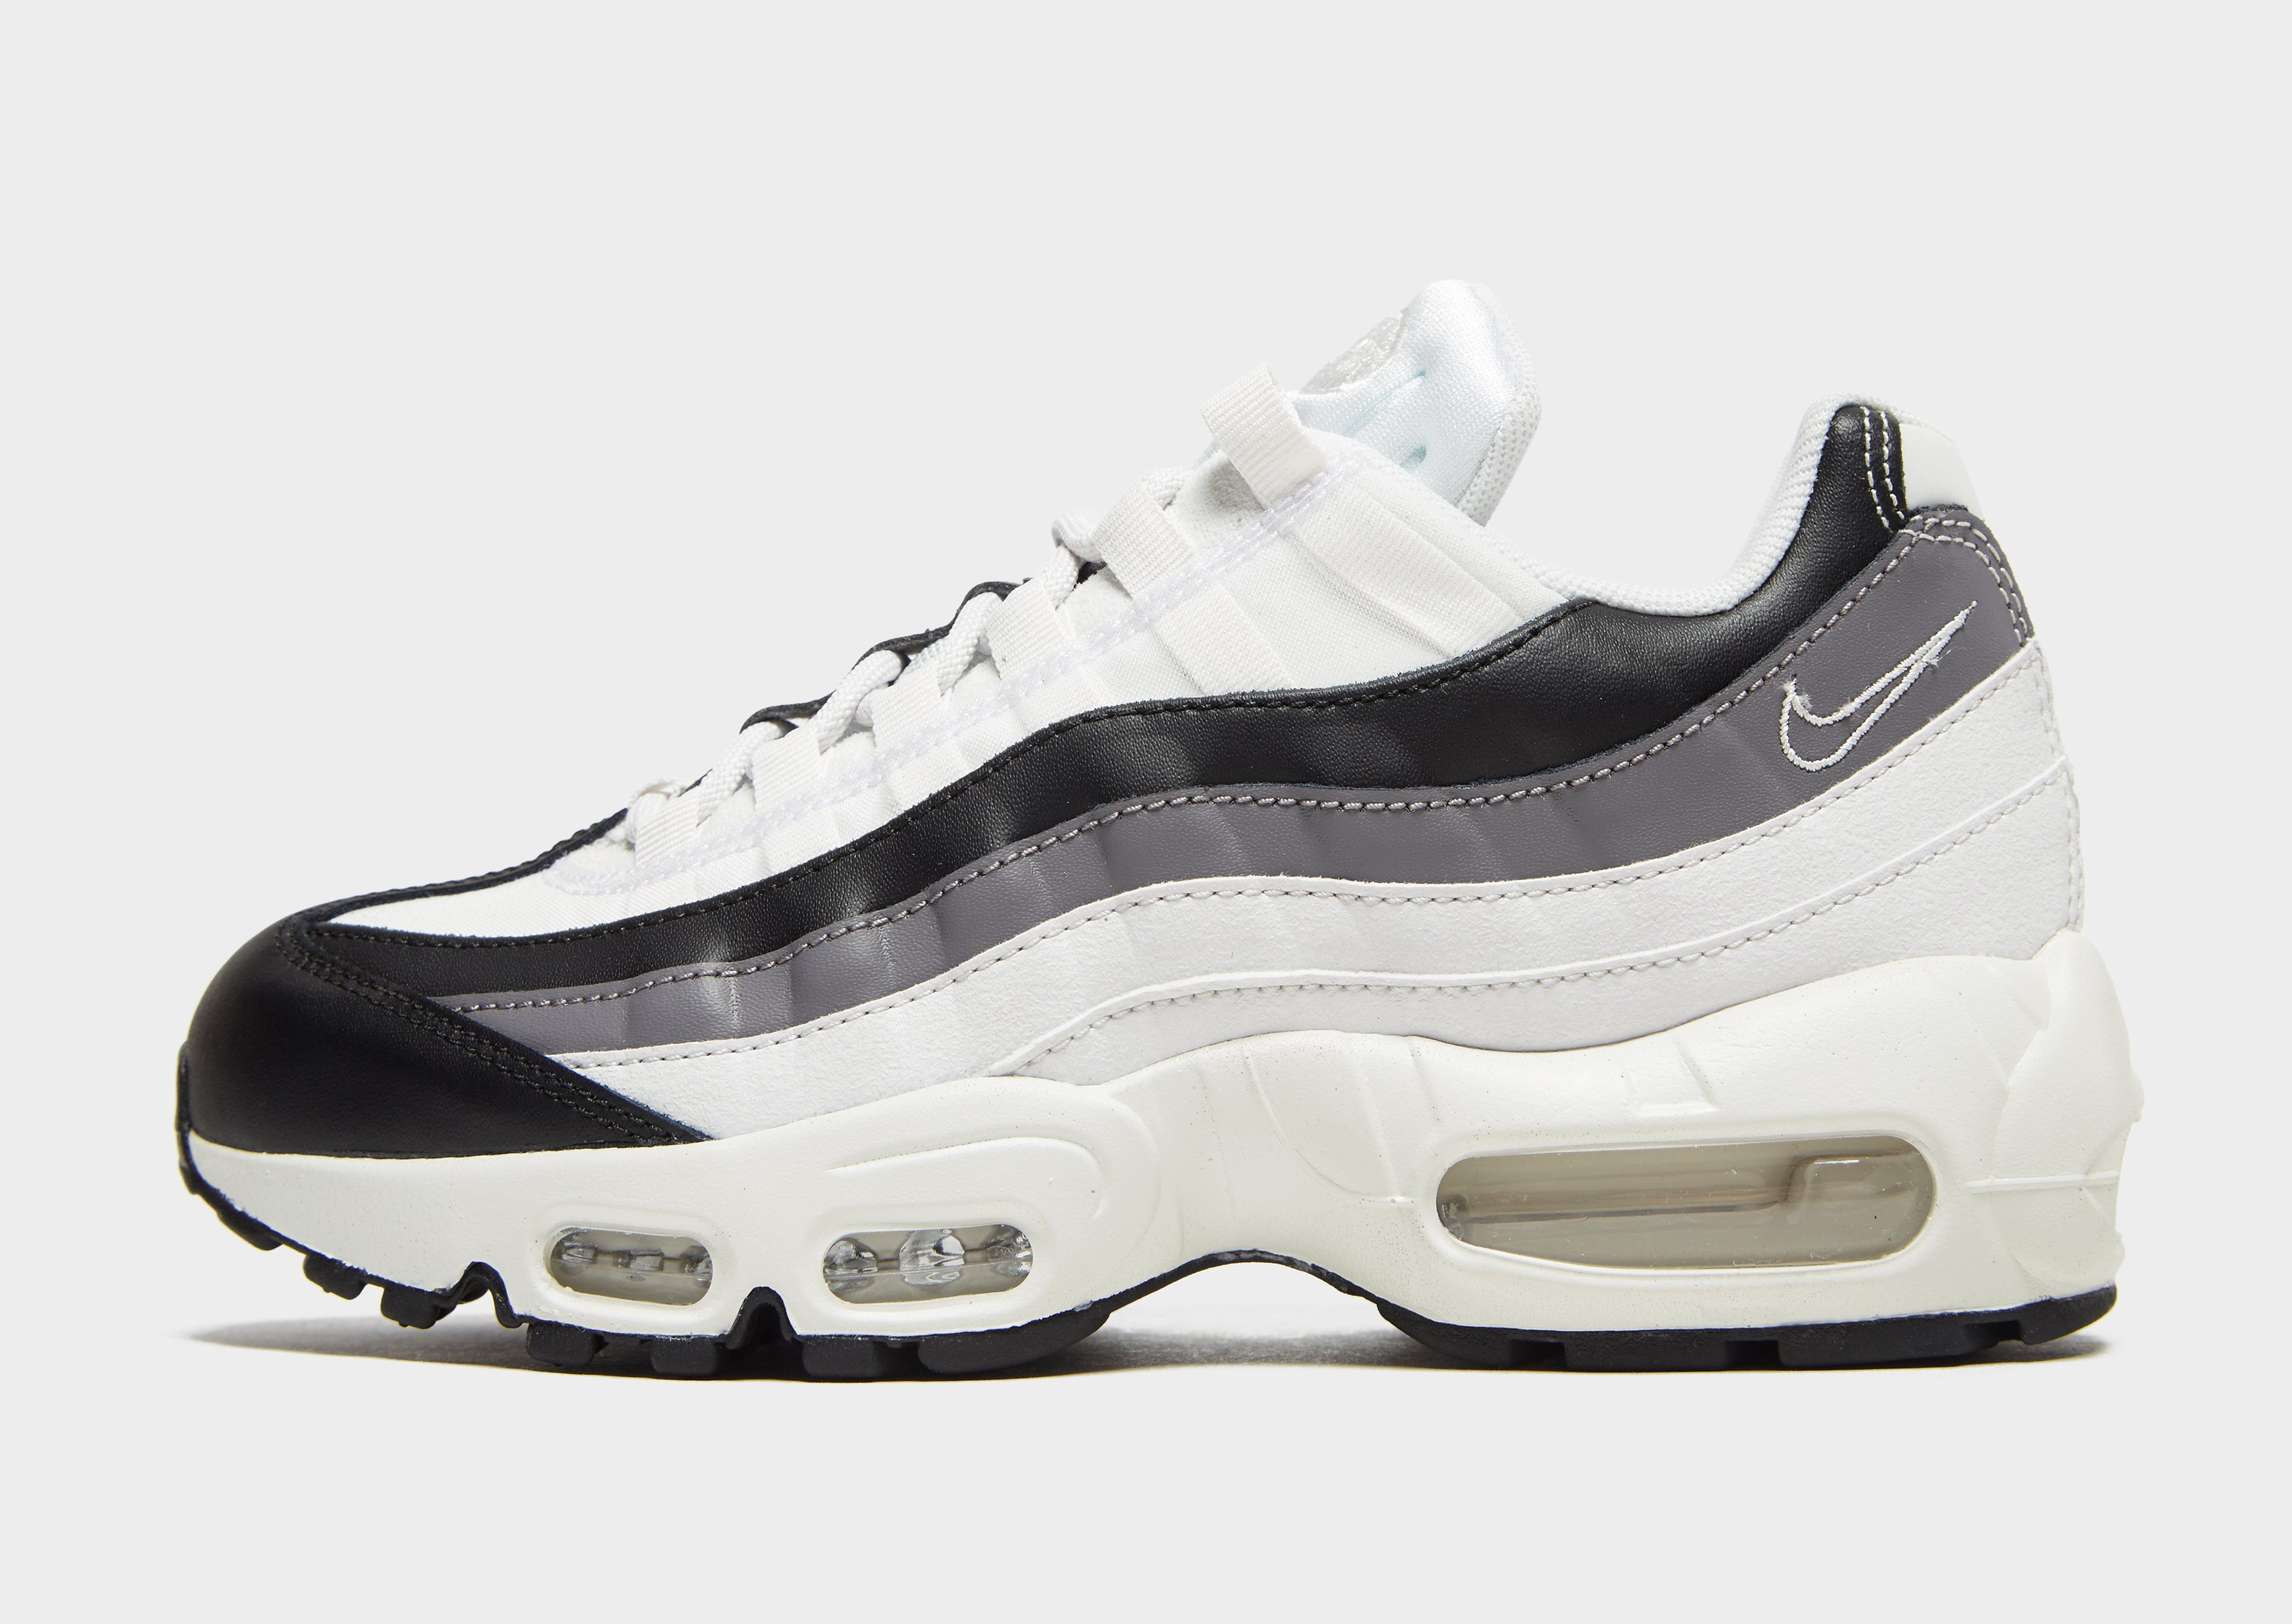 detailed look c8056 a470c Nike Air Max 95 Women's | JD Sports